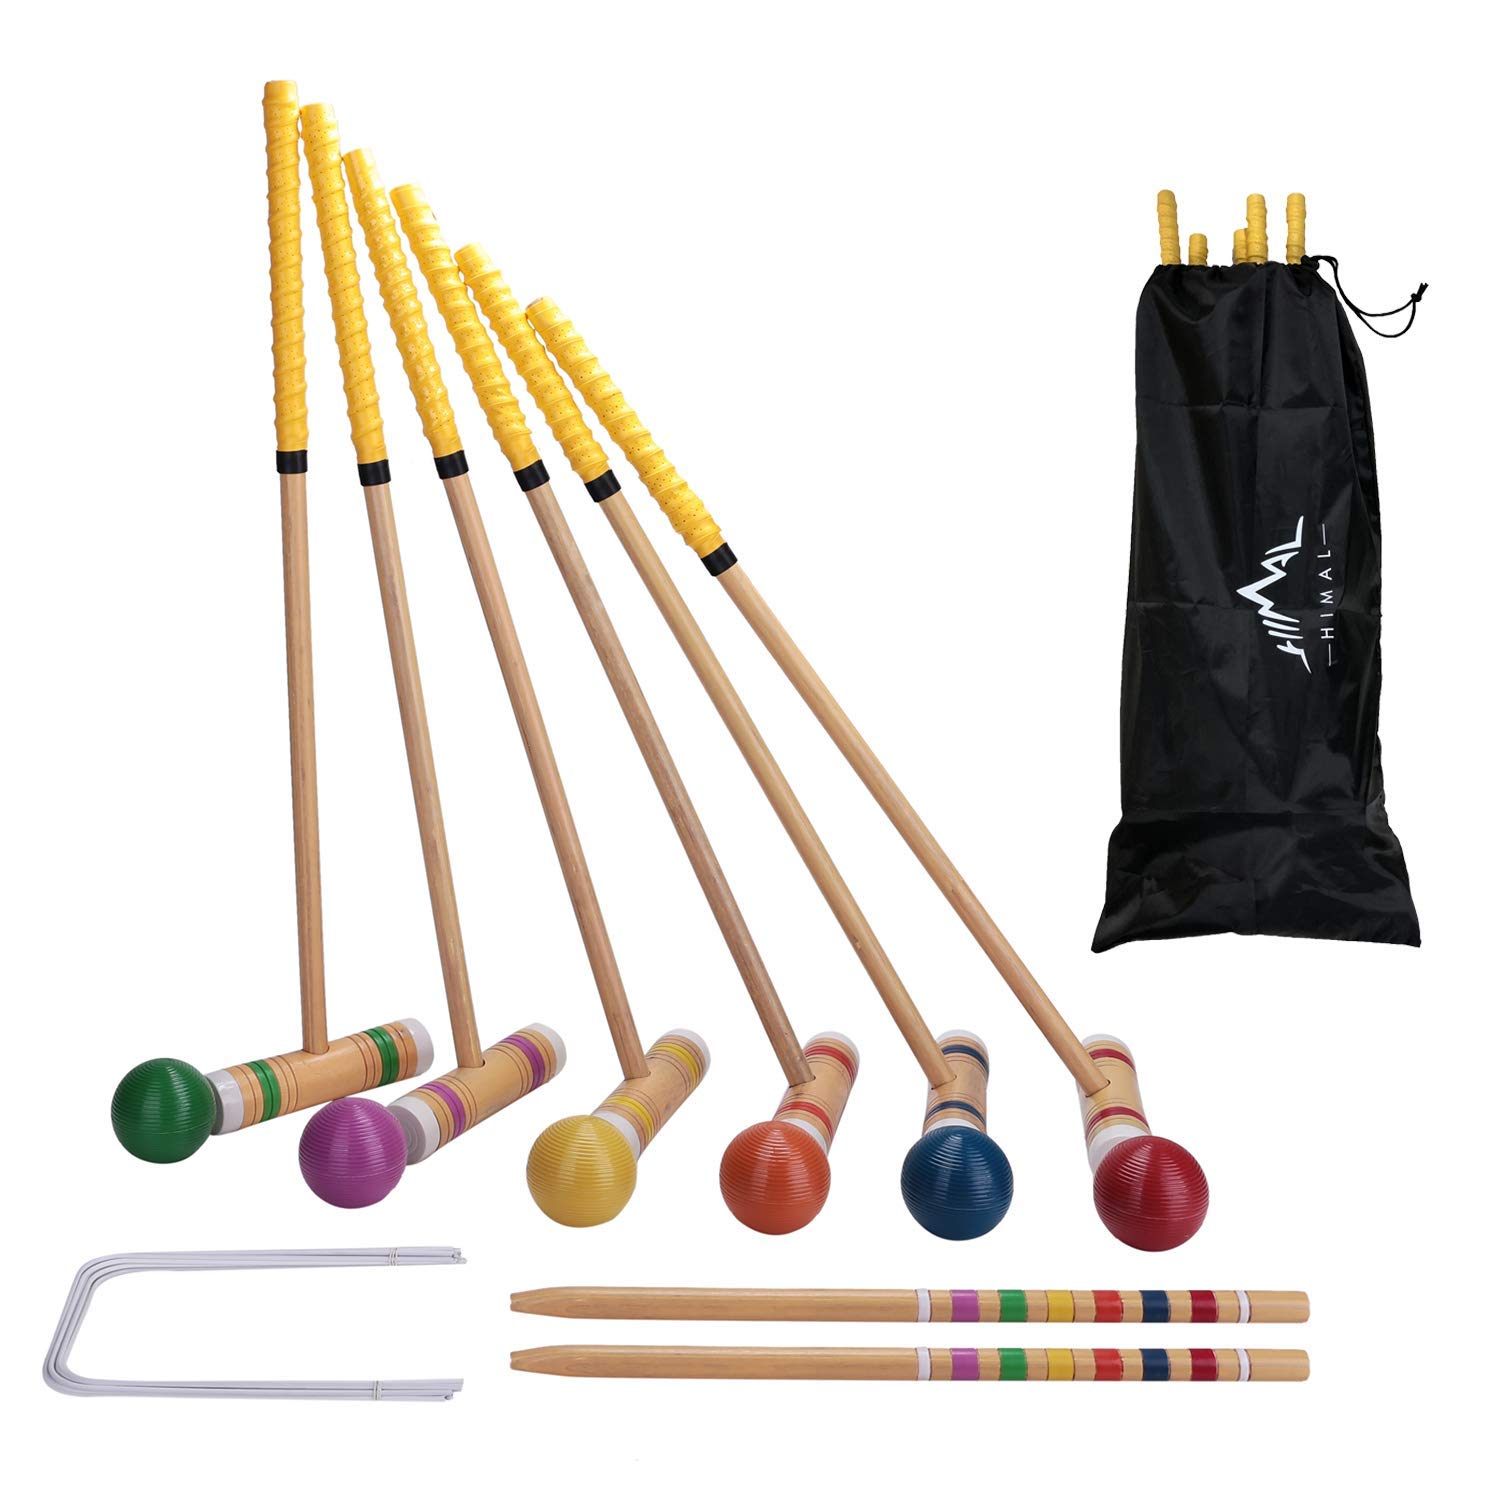 Himal Premium Wooden Six Player Croquet Set with Carrying Case (28 inch)